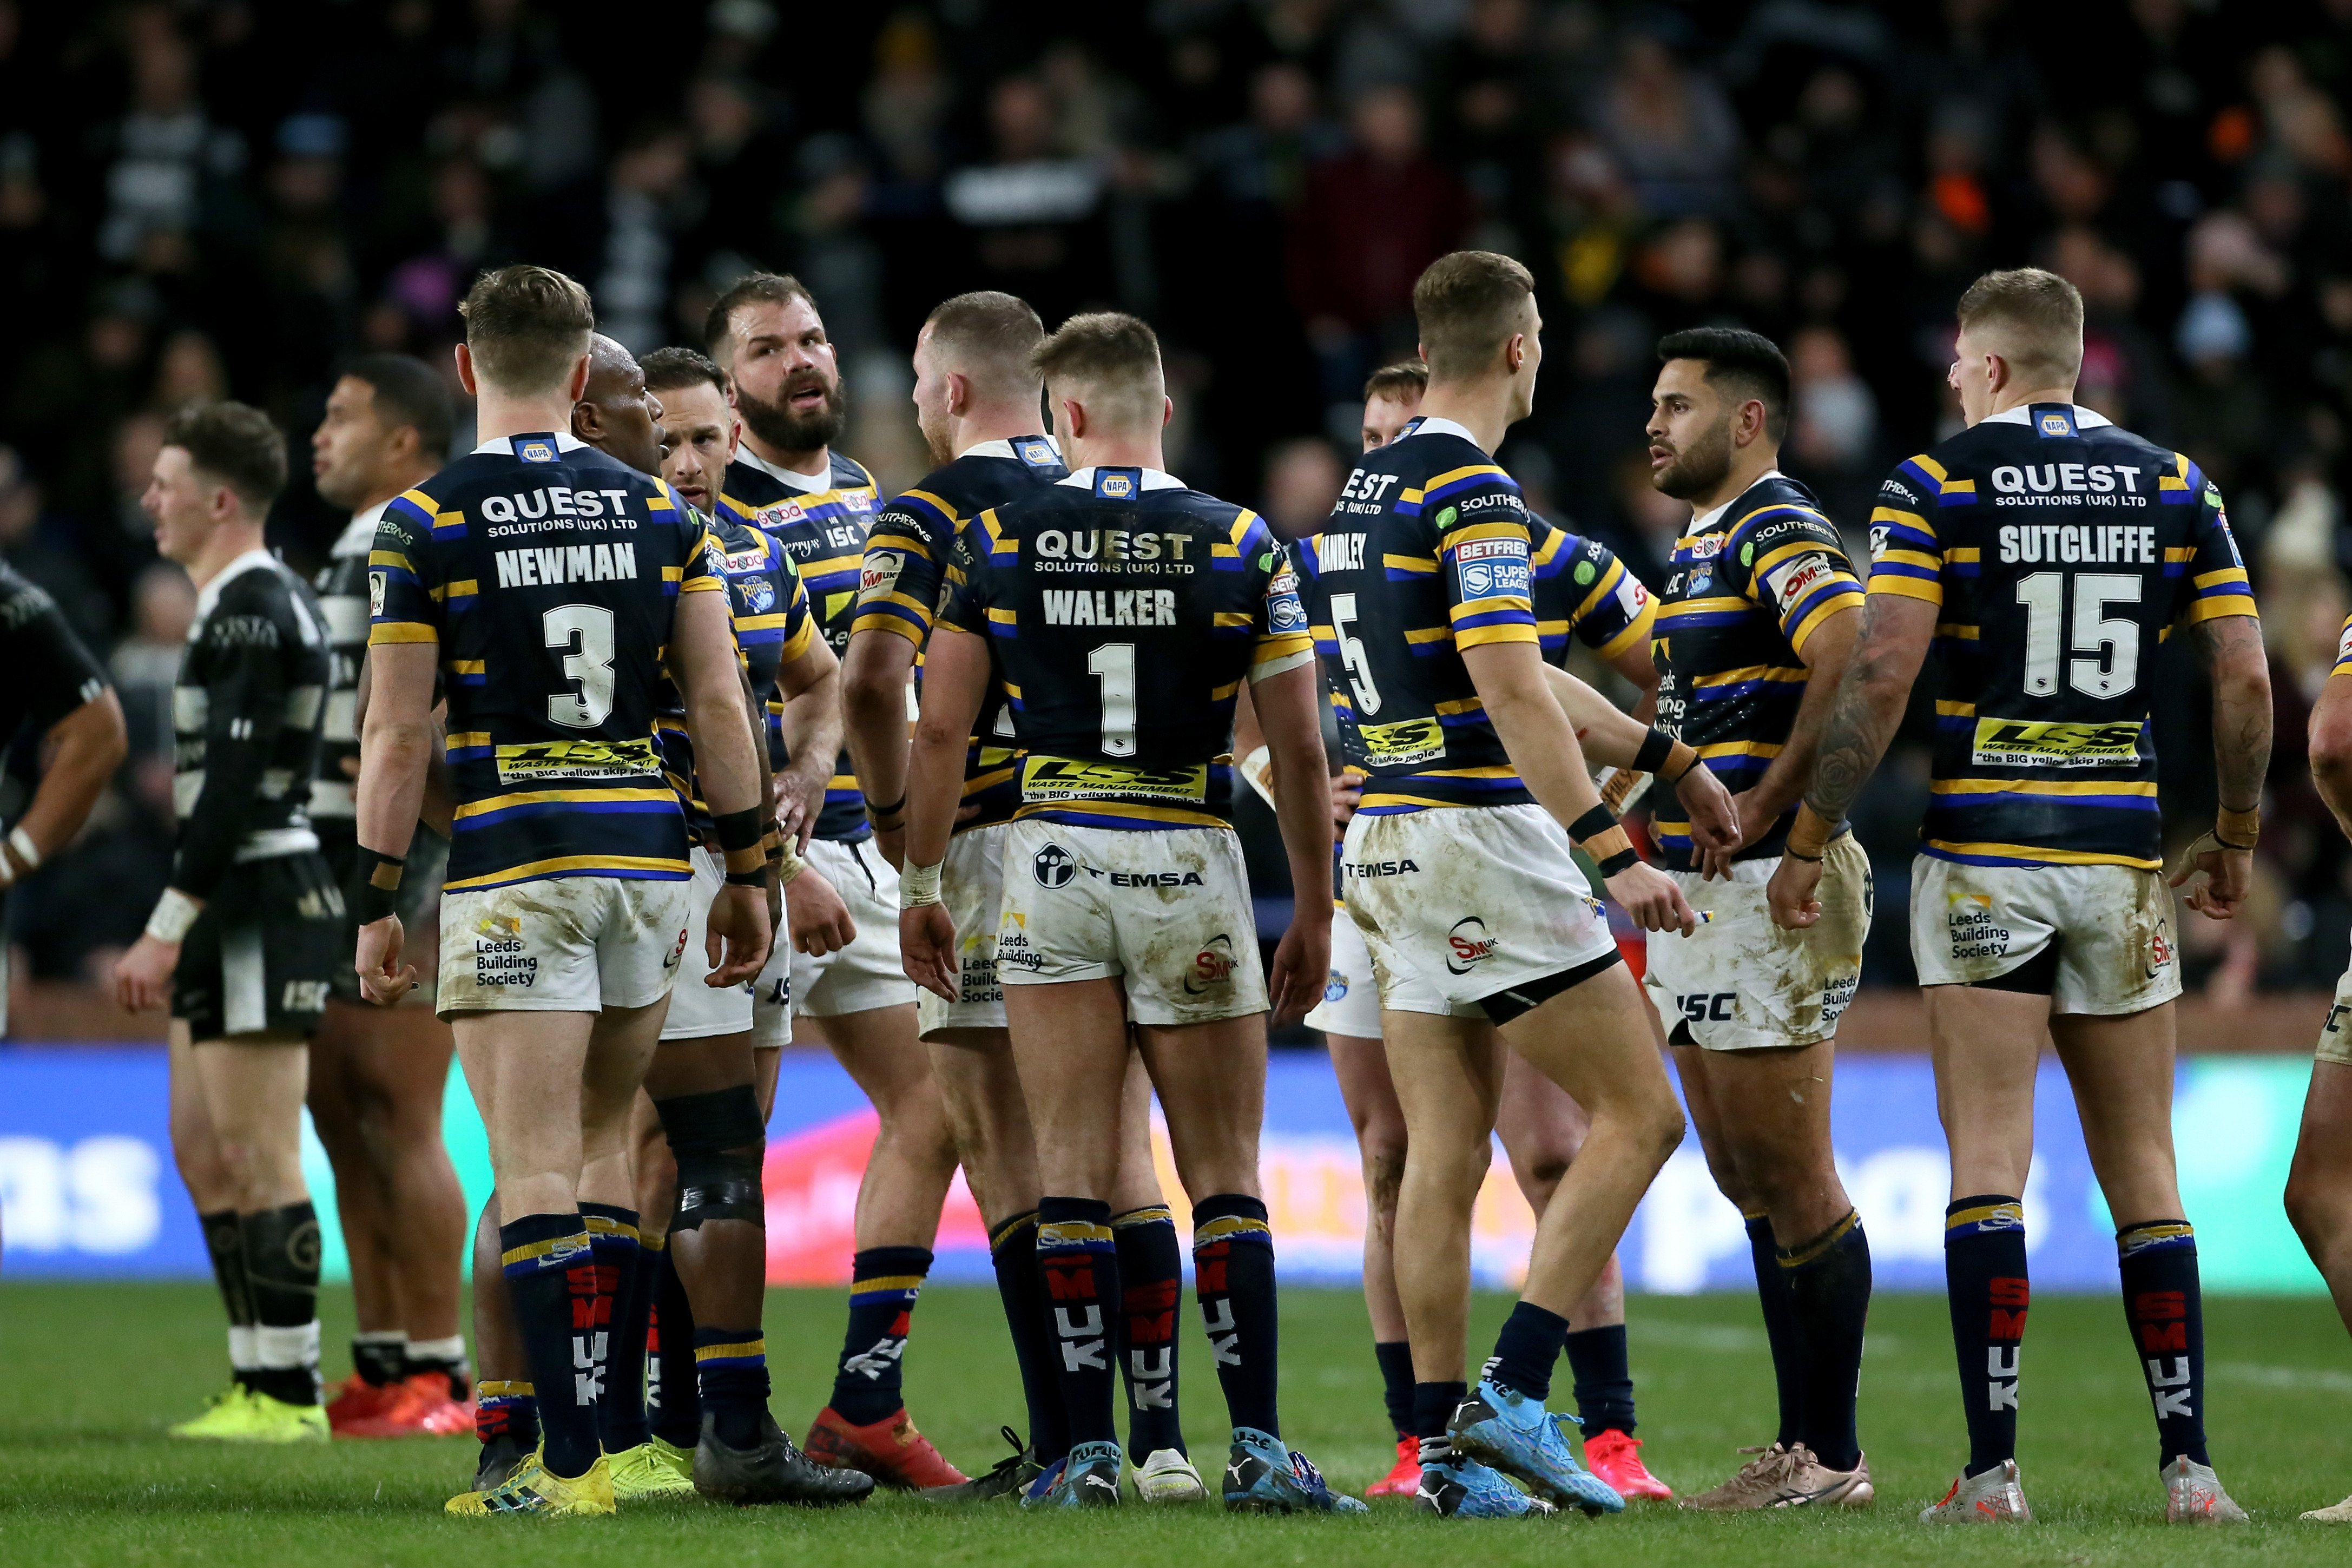 Super League to resume with matches held at St Helens and Leeds' stadiums